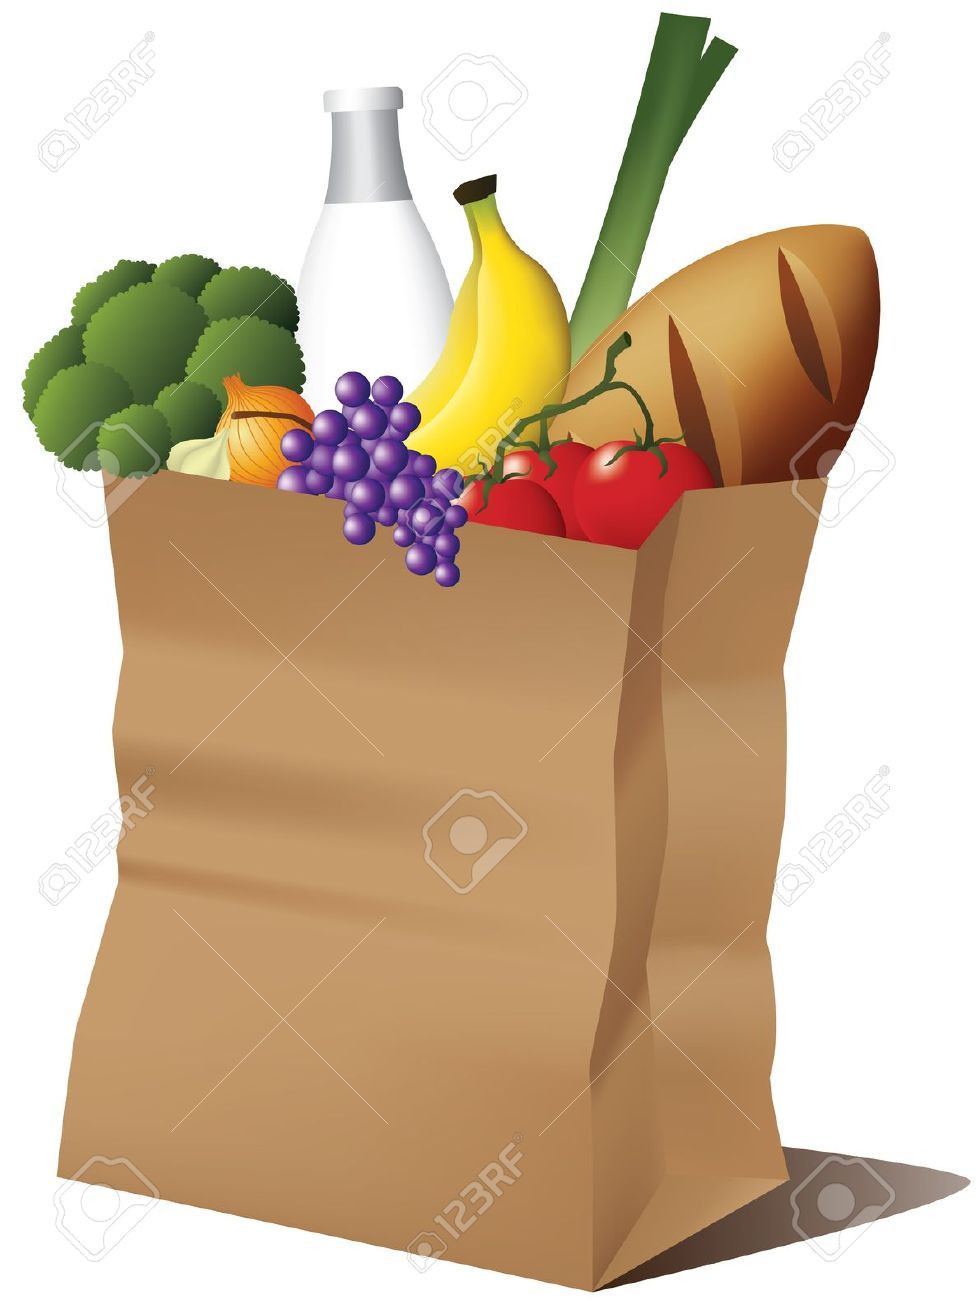 groceries bag: Grocery paper .